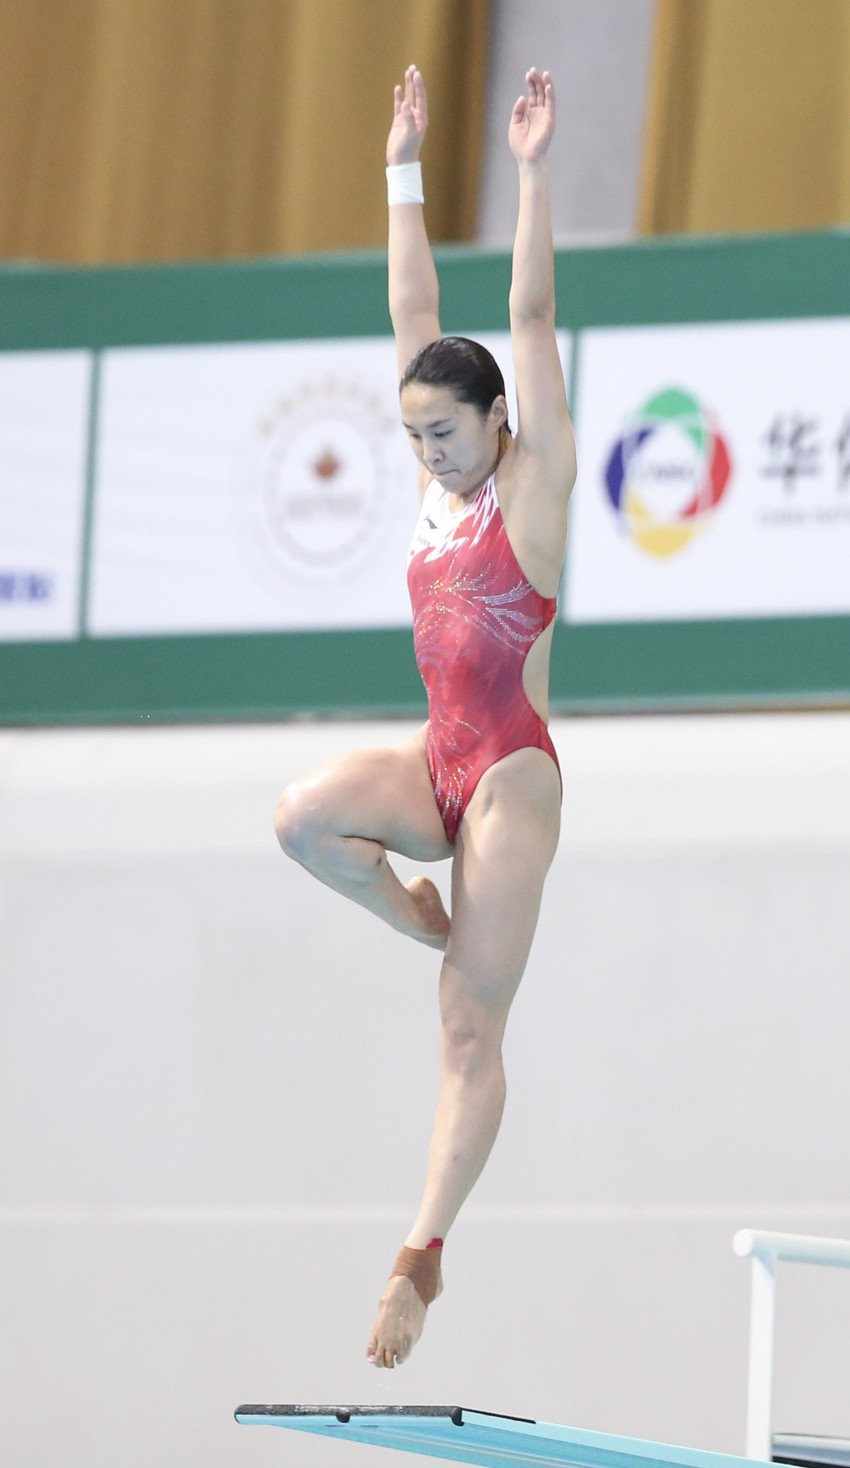 Han Wang inflicted the first defeat on her fellow Chinese diver Shi Tingmao since 2013 at today's FINA Diving World Series event at Beijing's Water Cube ©FINA